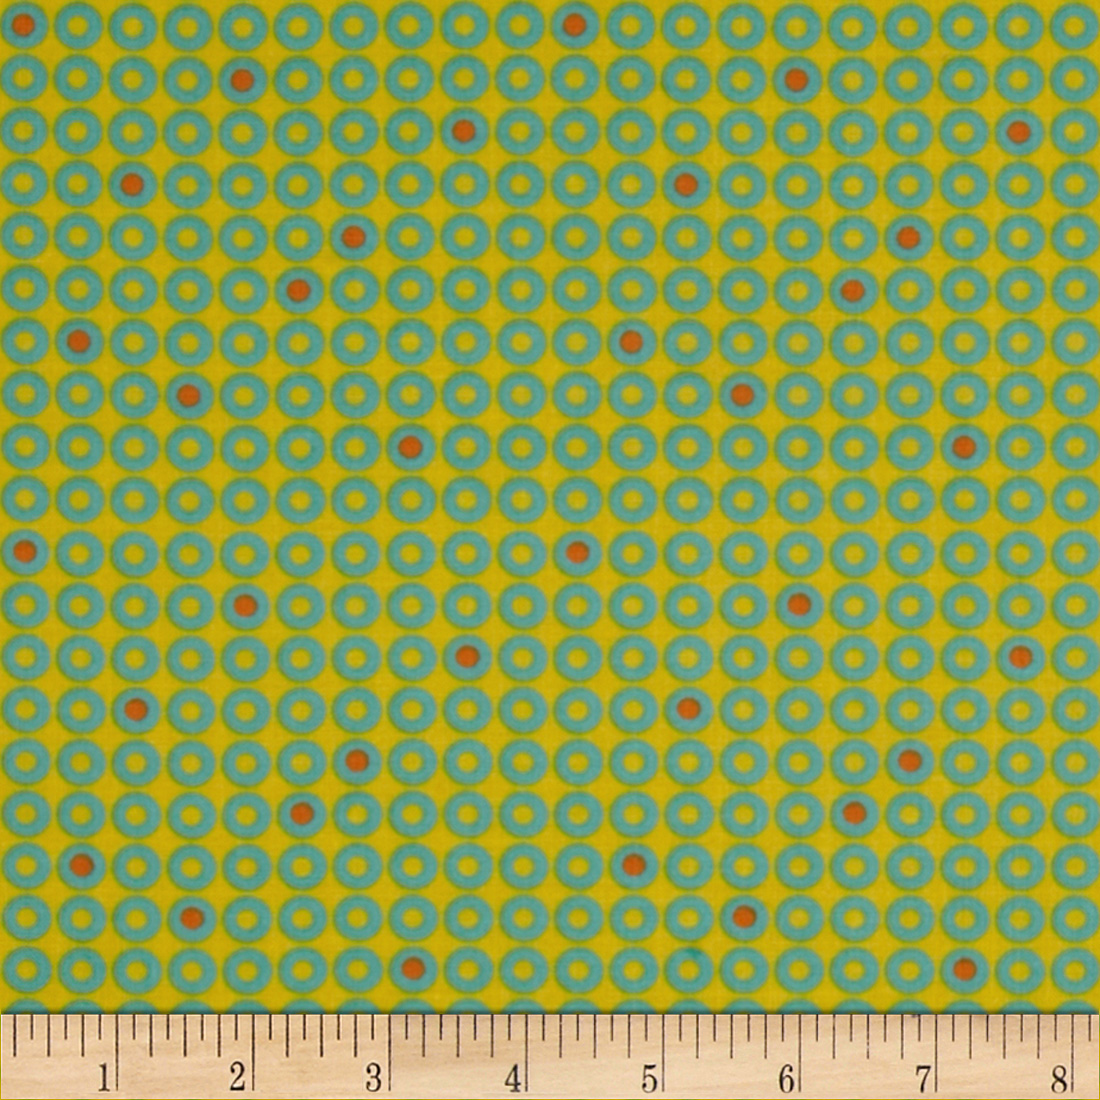 Moda Sphere Dots Sunshine Fabric